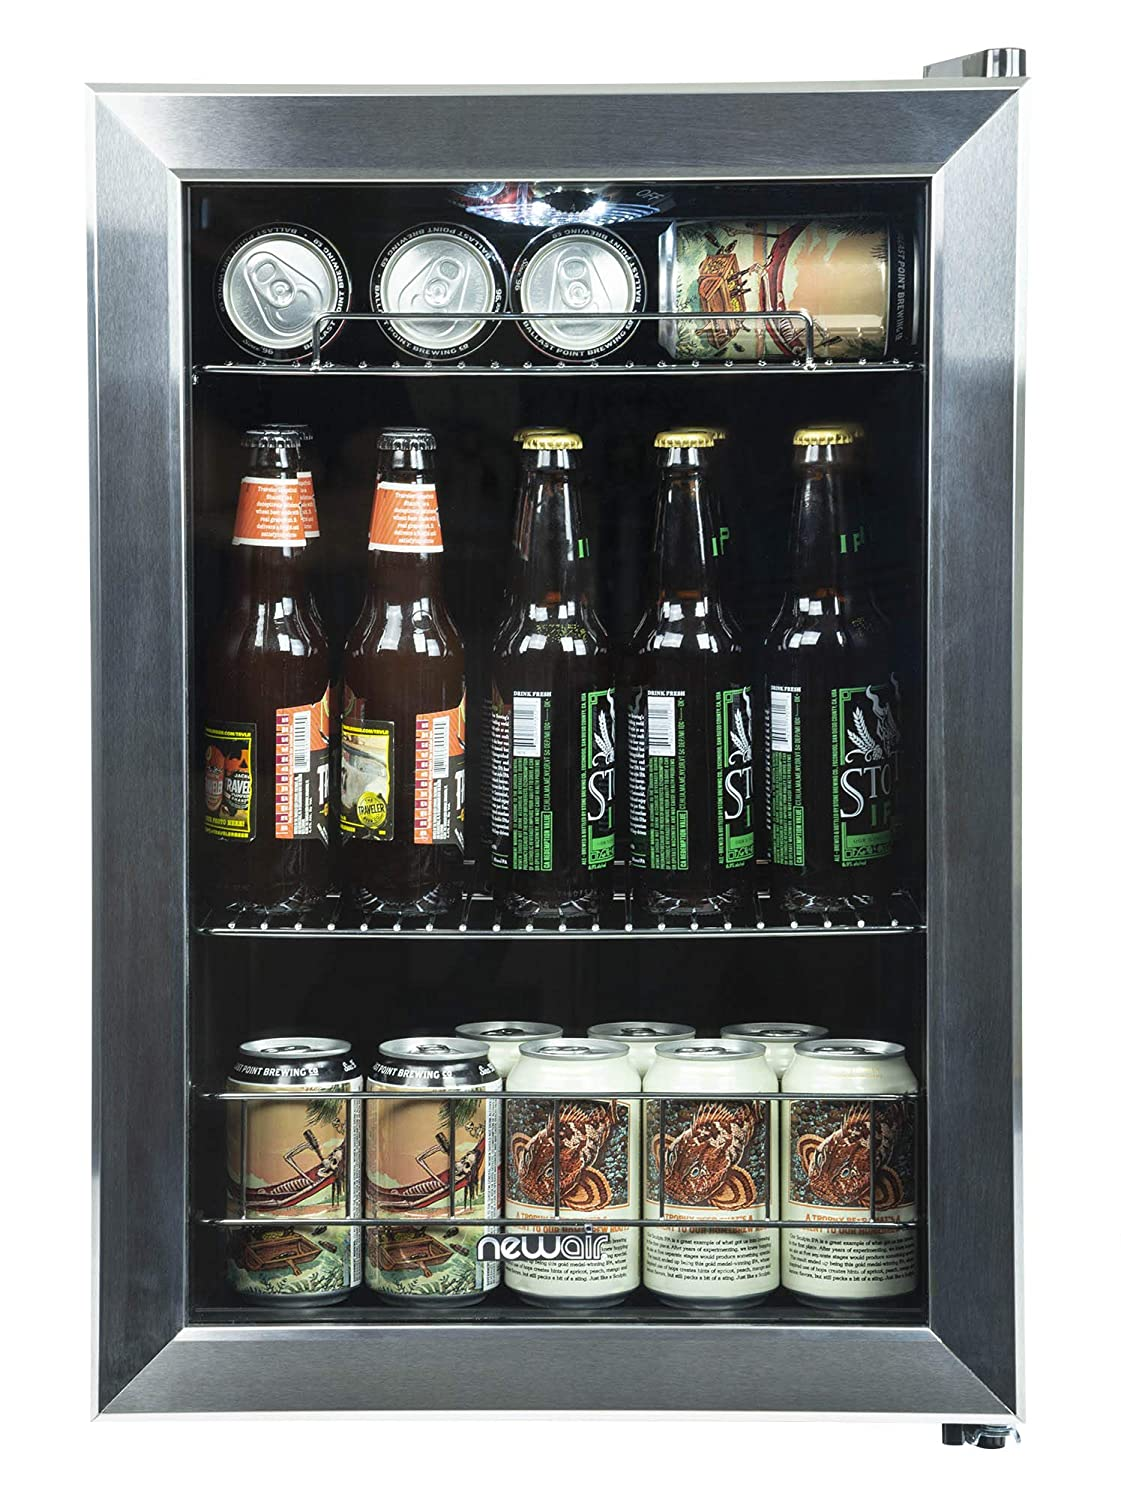 NewAir Beverage Cooler and Refrigerator, Small Mini Fridge with Glass Door, Perfect for Soda Beer or Wine, 90-Can Capacity, AB-850